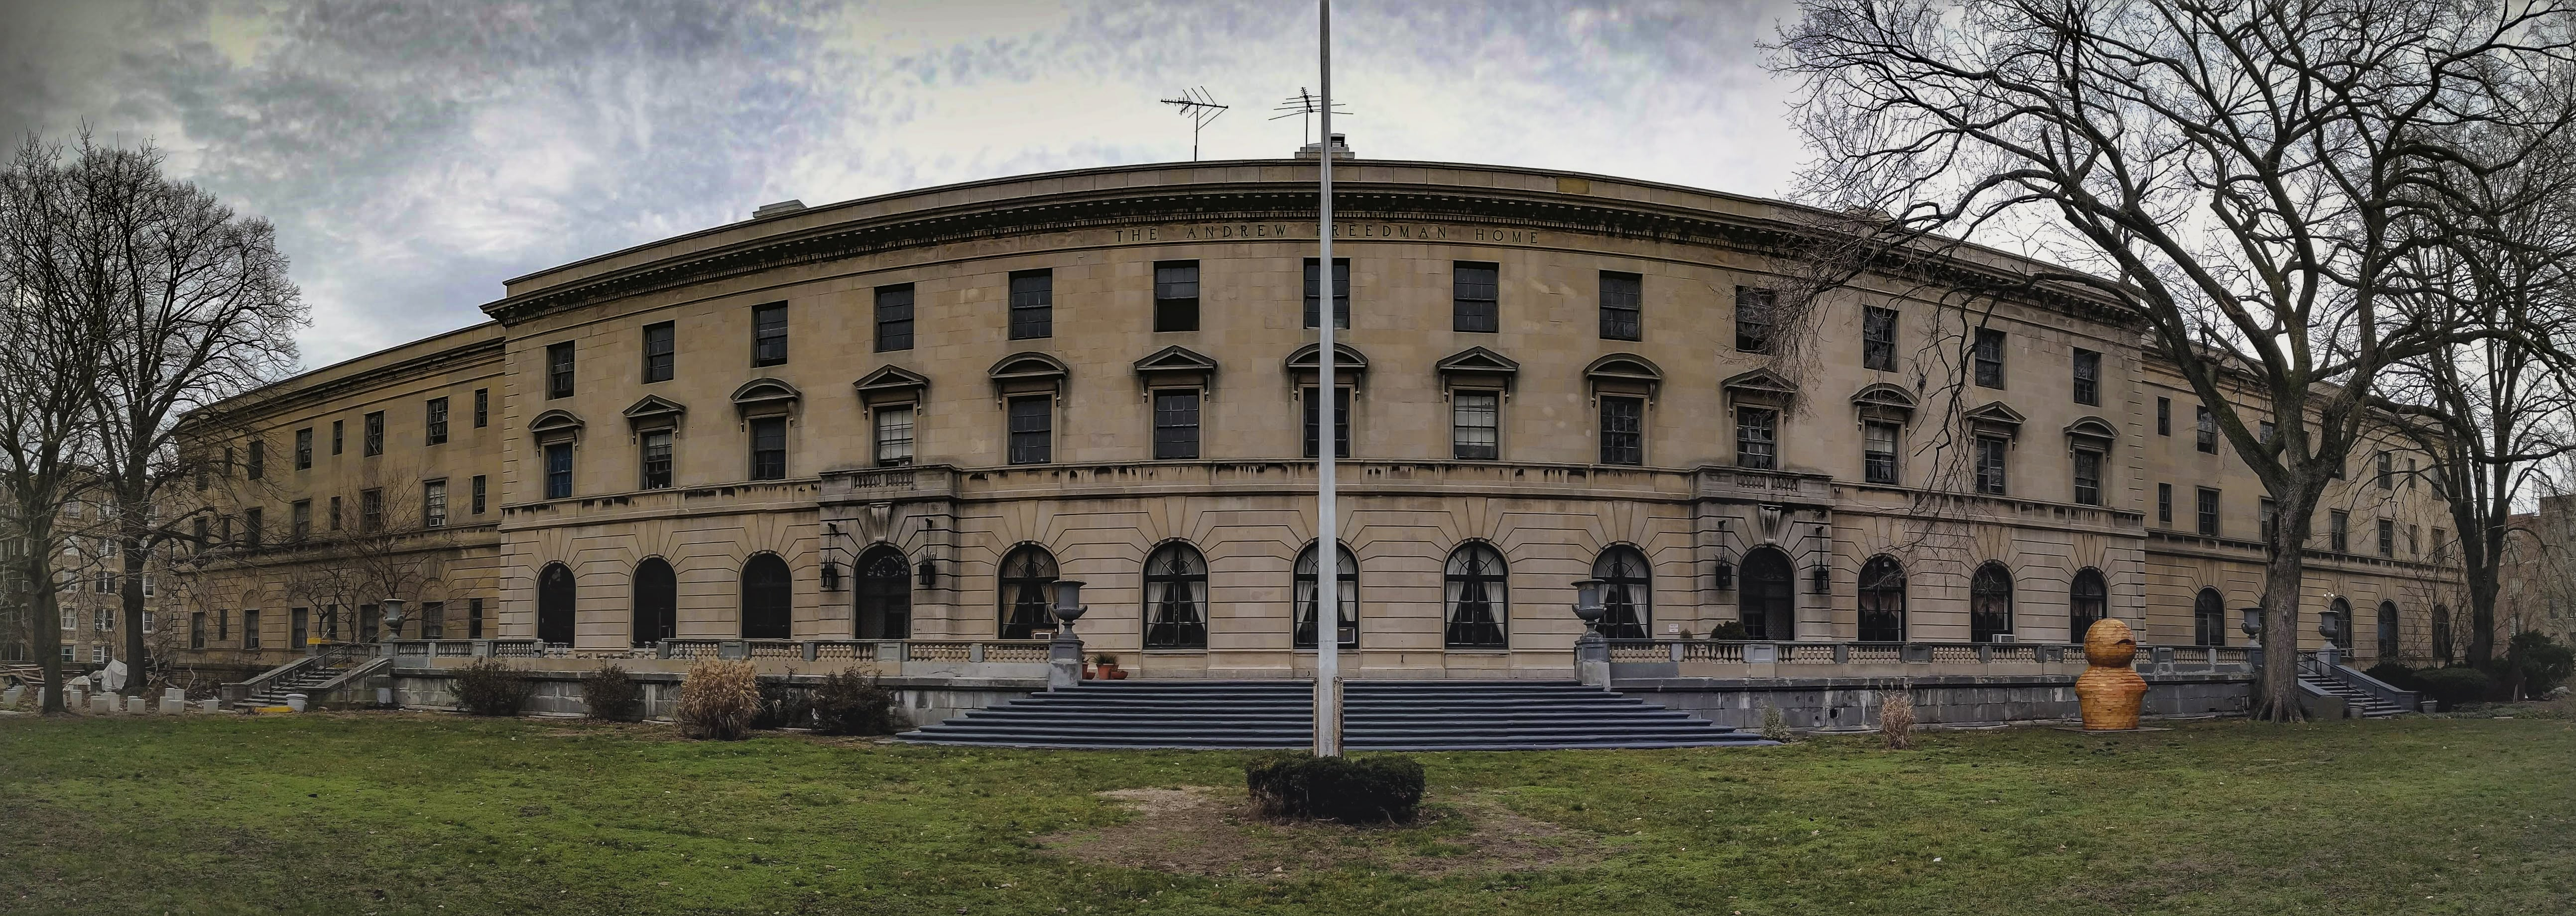 A panorama showing the entire facade of The Andrew Freedman Home as seen from its lawn that fronts the Grand Concourse.